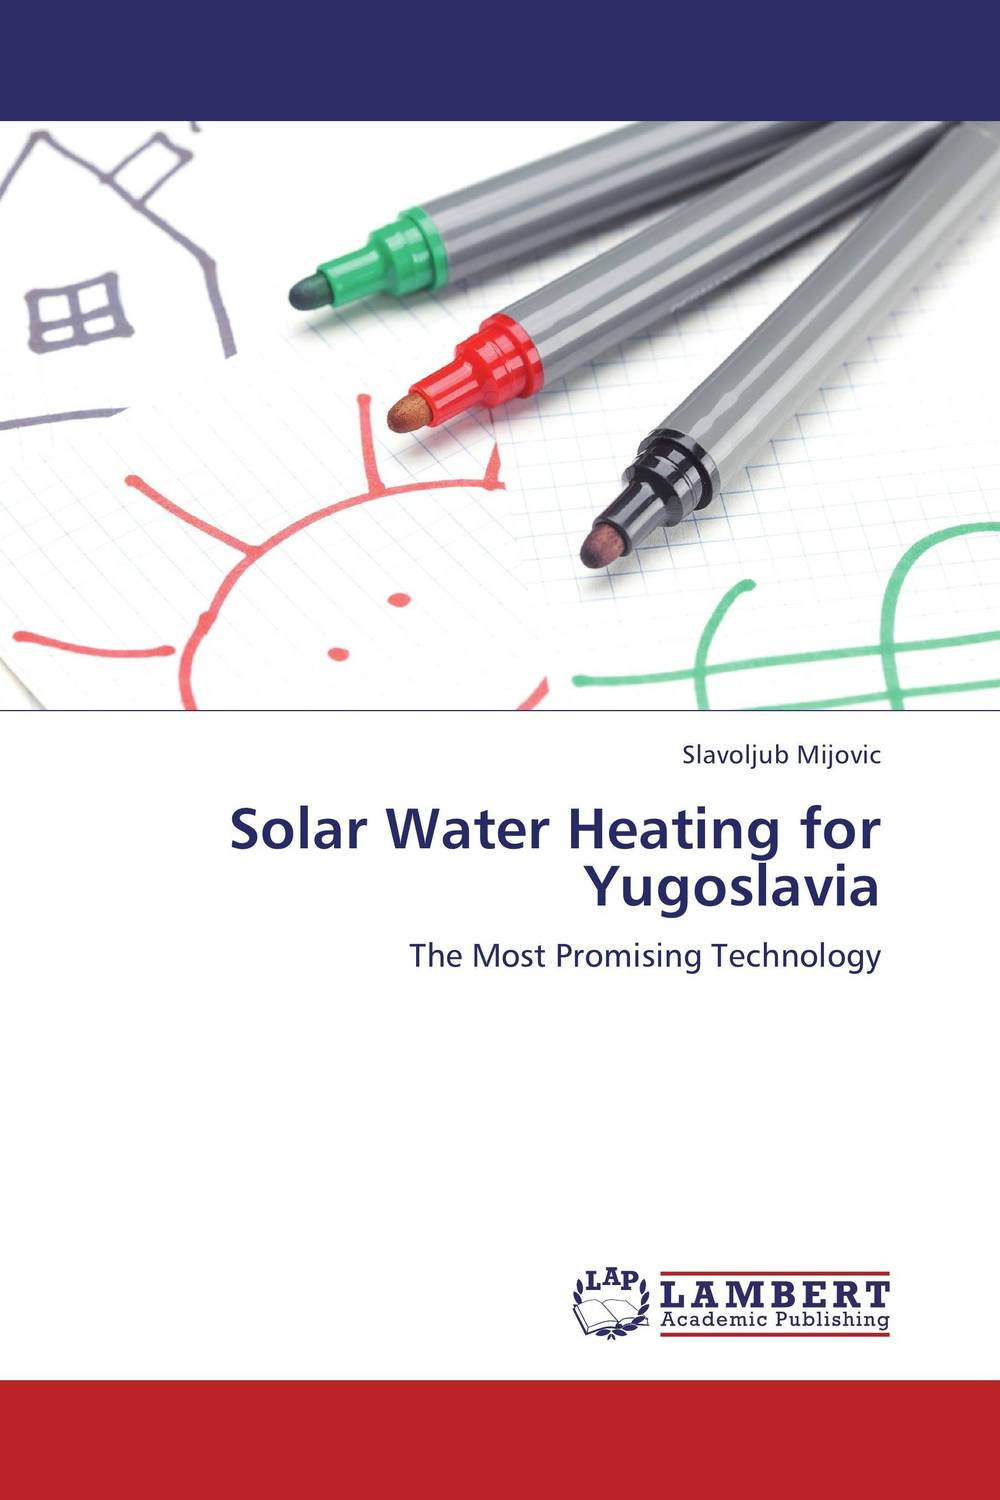 Solar Water Heating for Yugoslavia thermo operated water valves can be used in food processing equipments biomass boilers and hydraulic systems